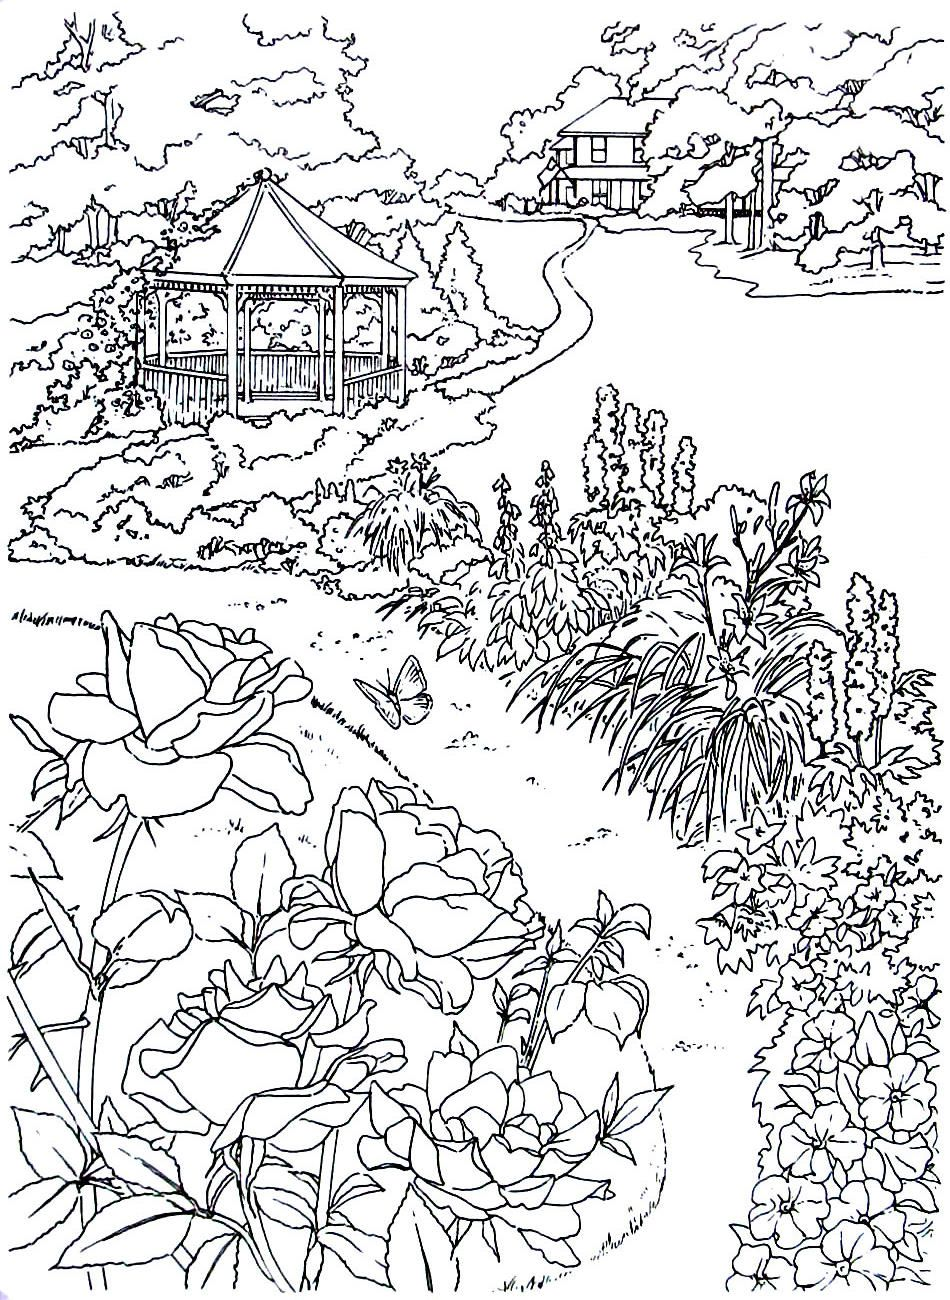 Farm house with gazebo living in the country coloring book page